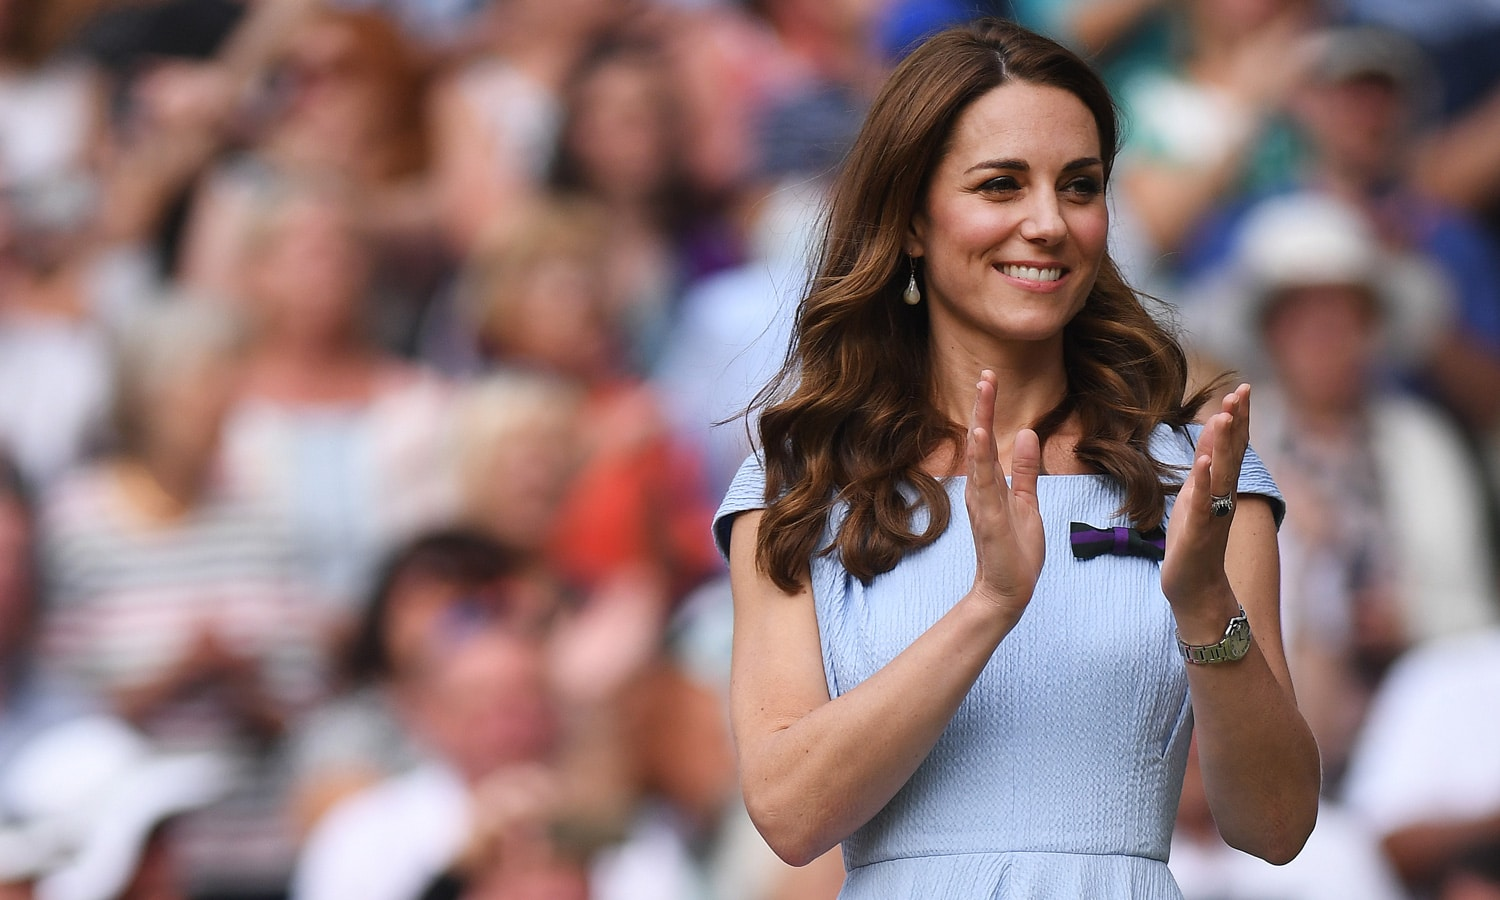 Kate Middleton's Weight Loss Before Marrying William Had